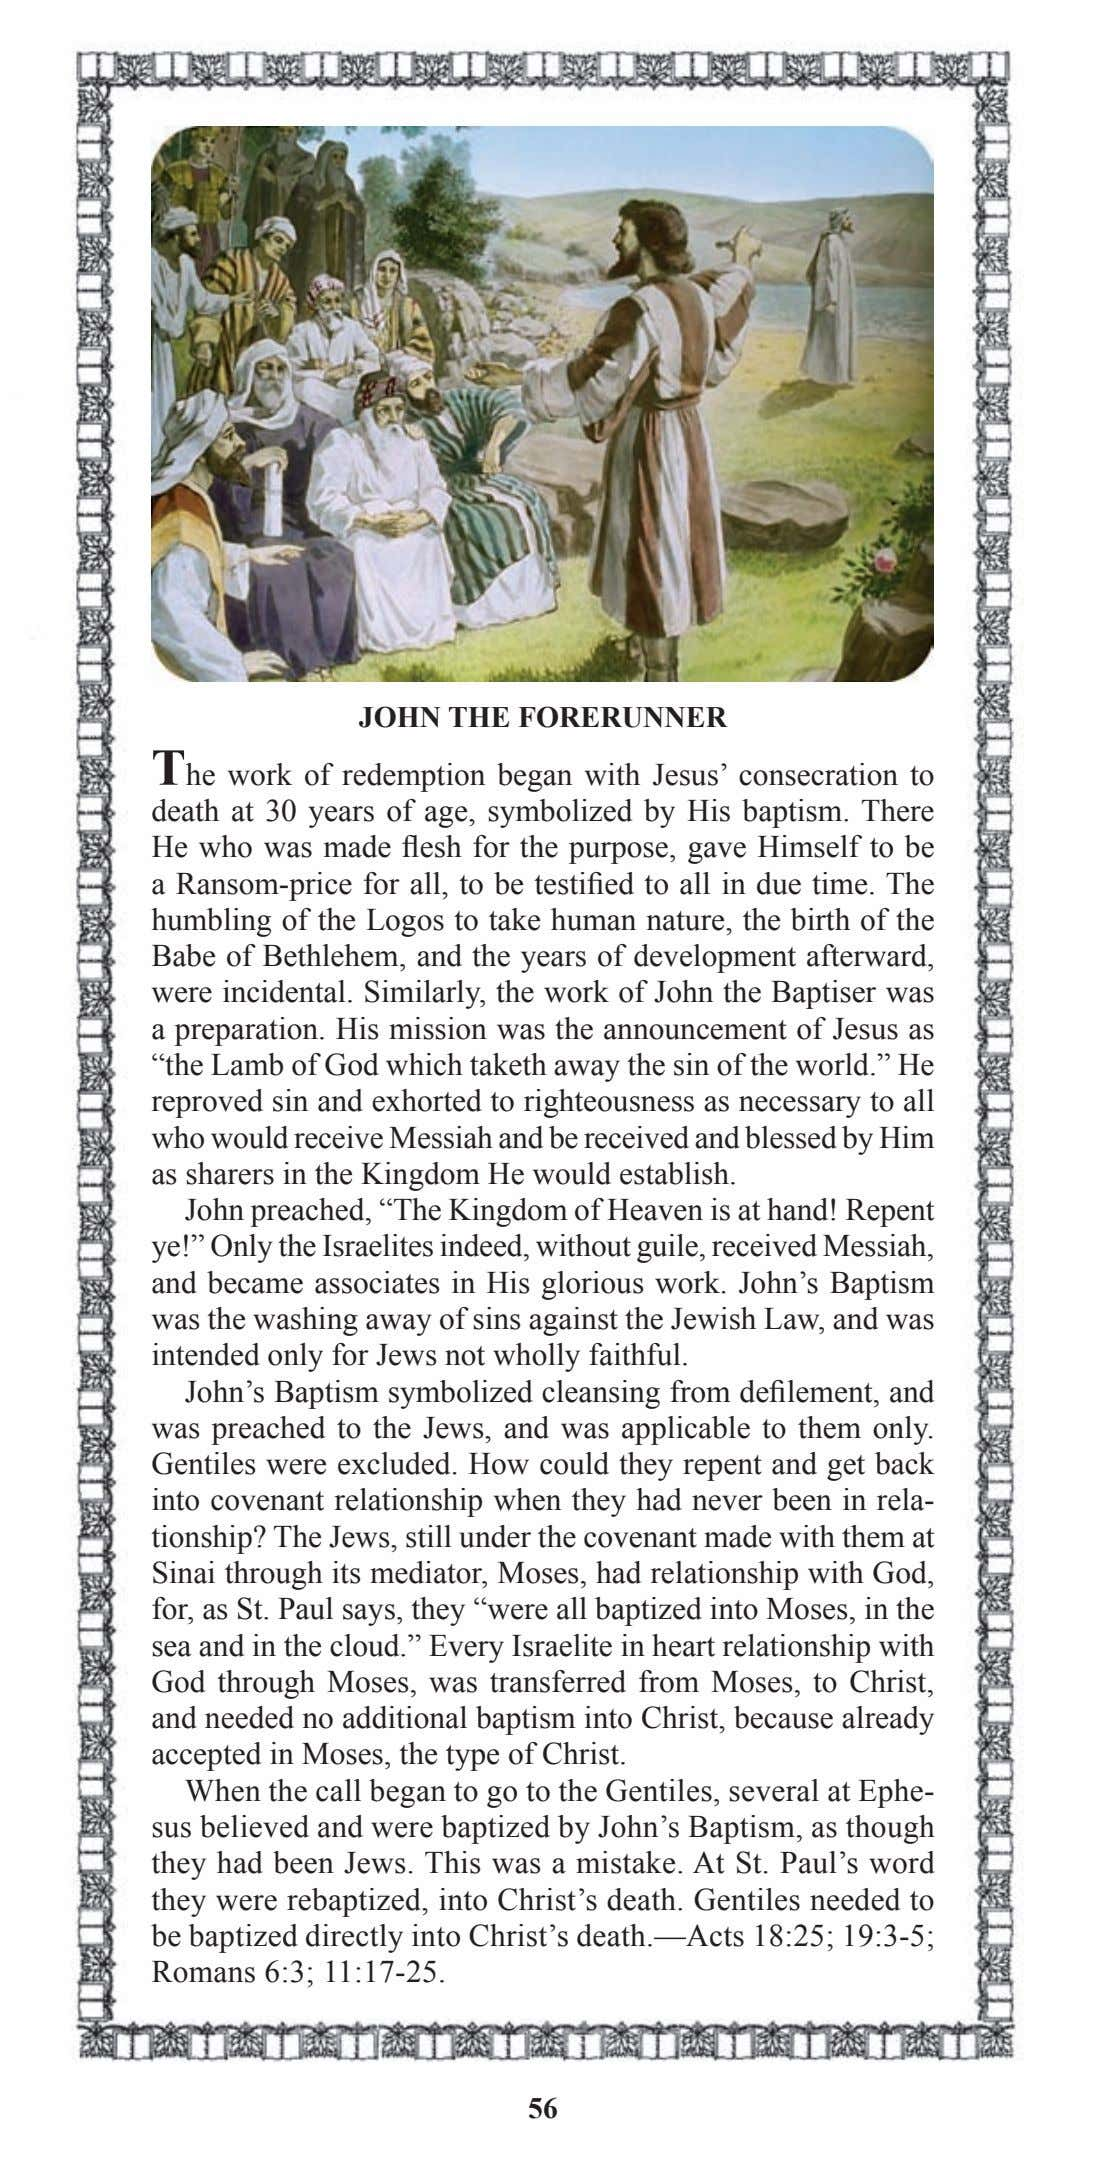 JOHN THE FORERUNNER The work of redemption began with Jesus' consecration to death at 30